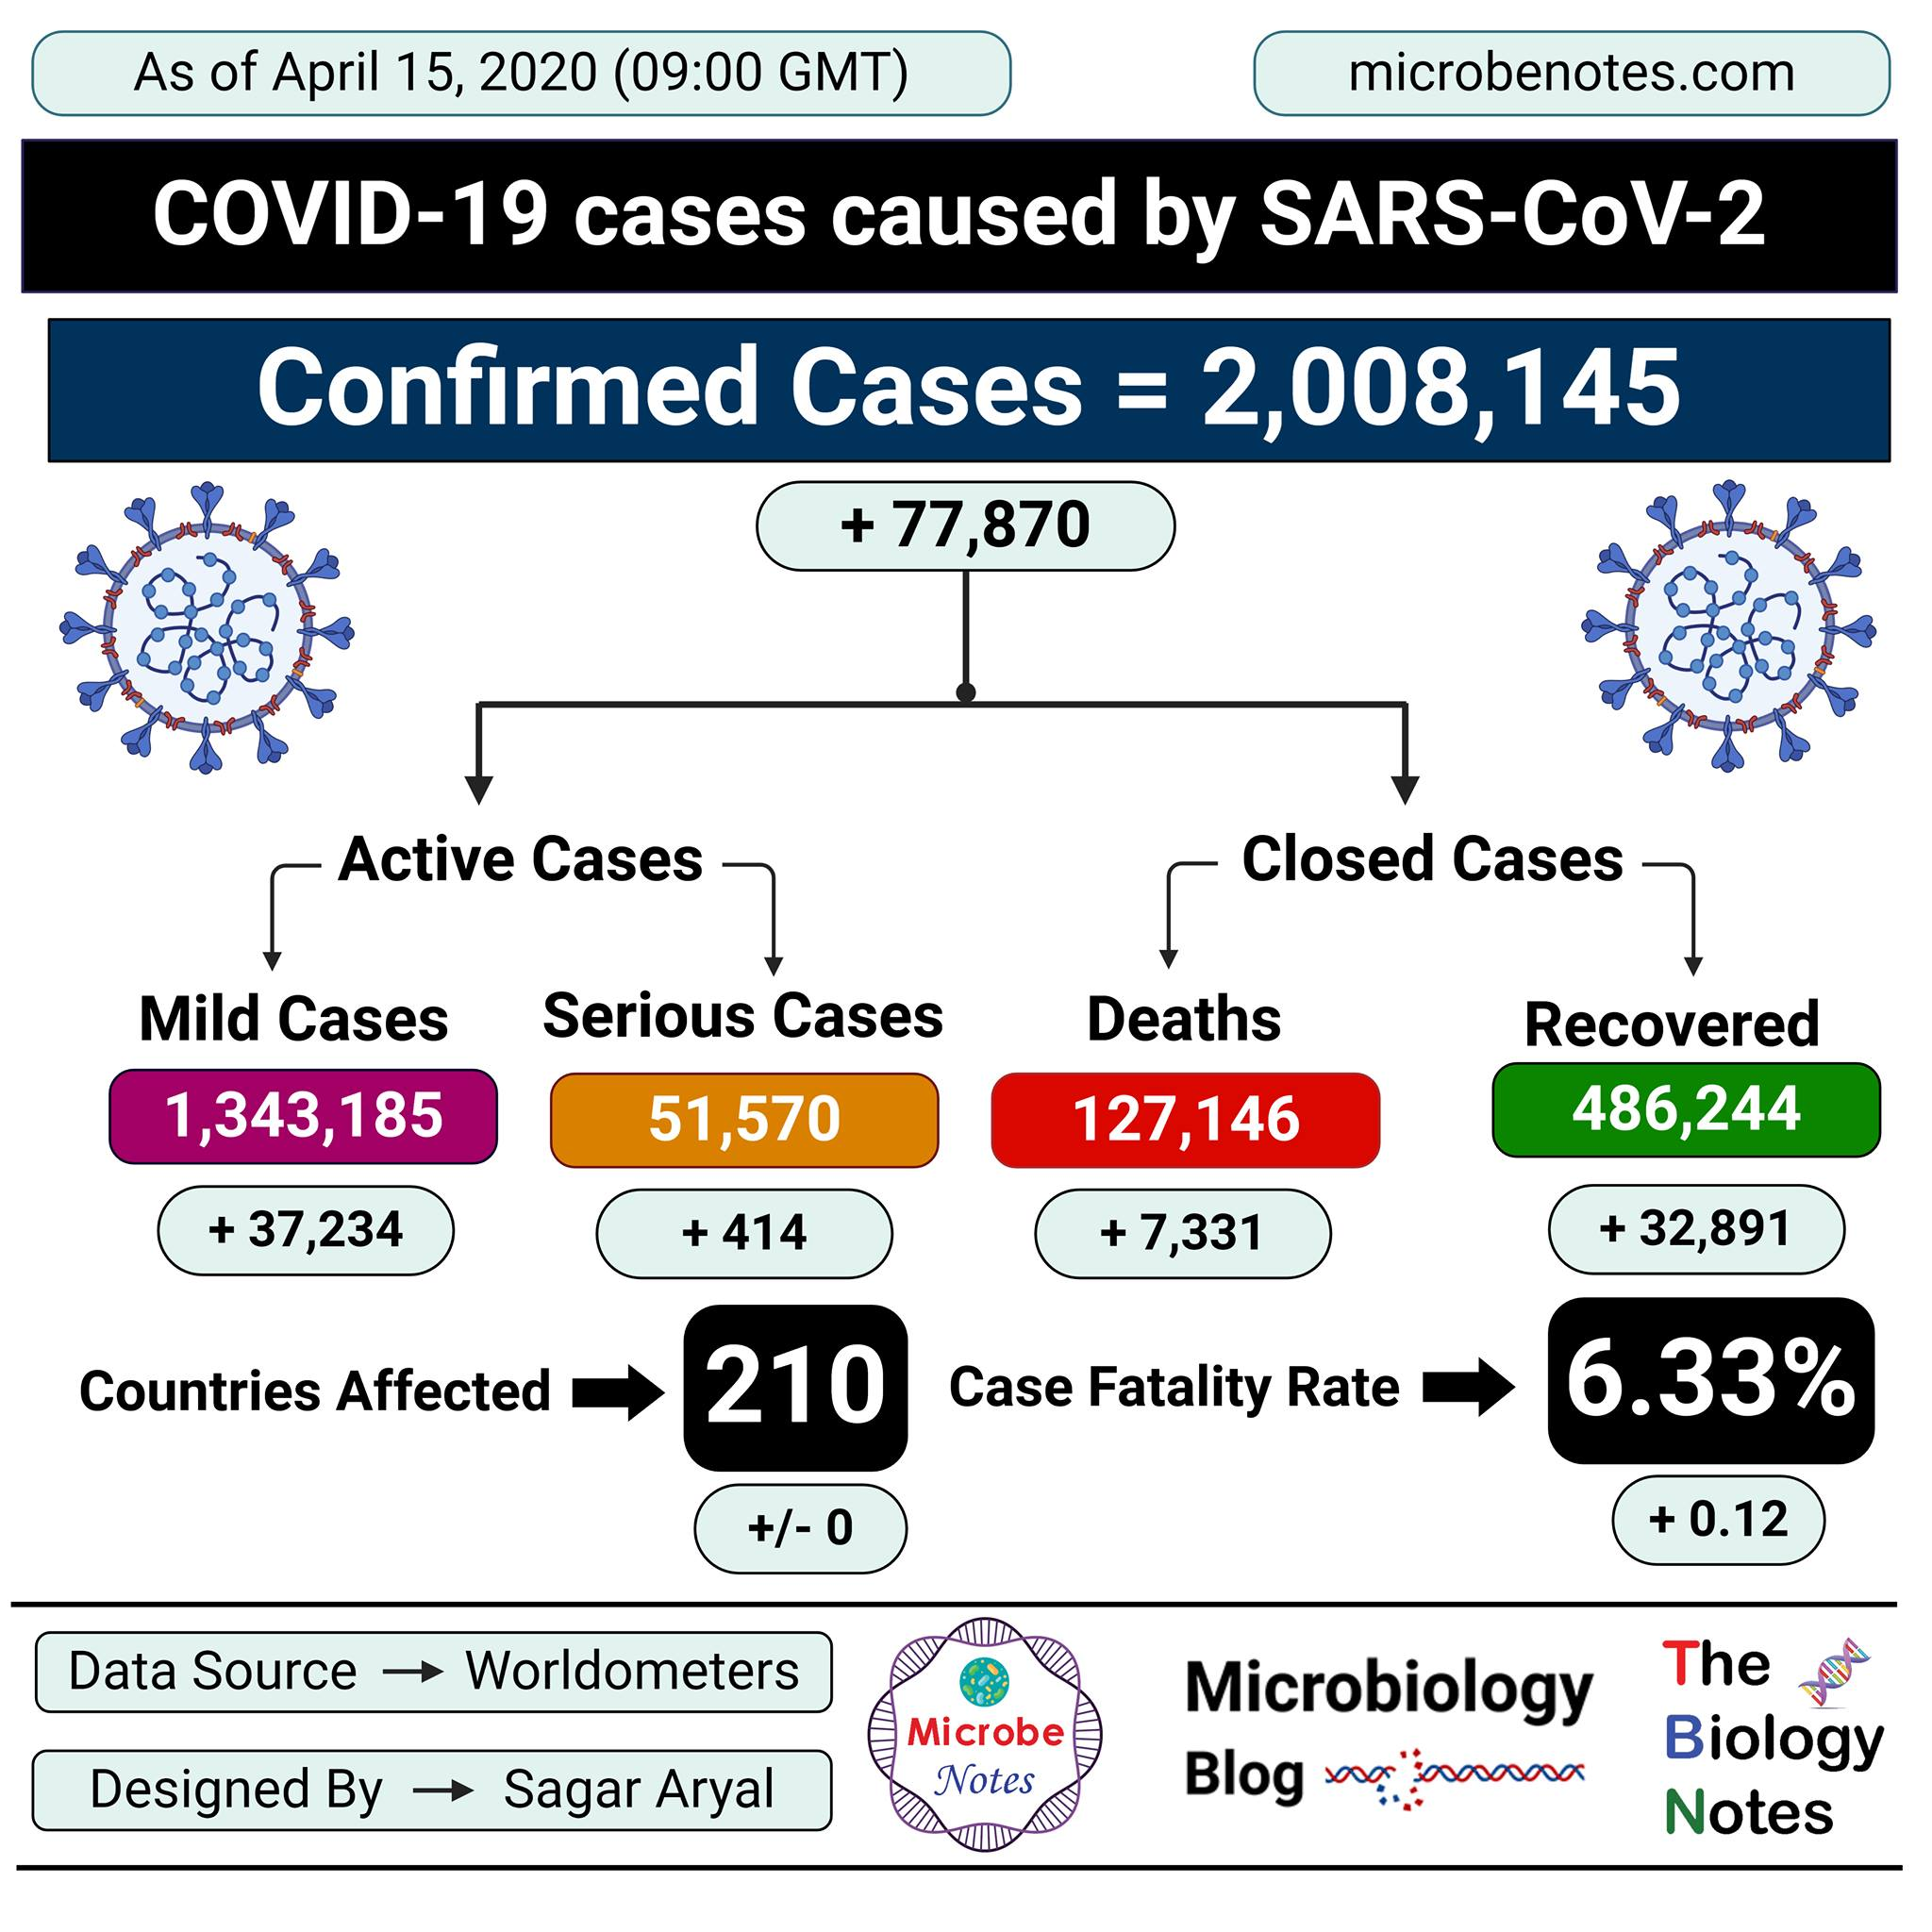 Epidemiology of COVID-19 caused by SARS-CoV-2 as of April 15, 2020